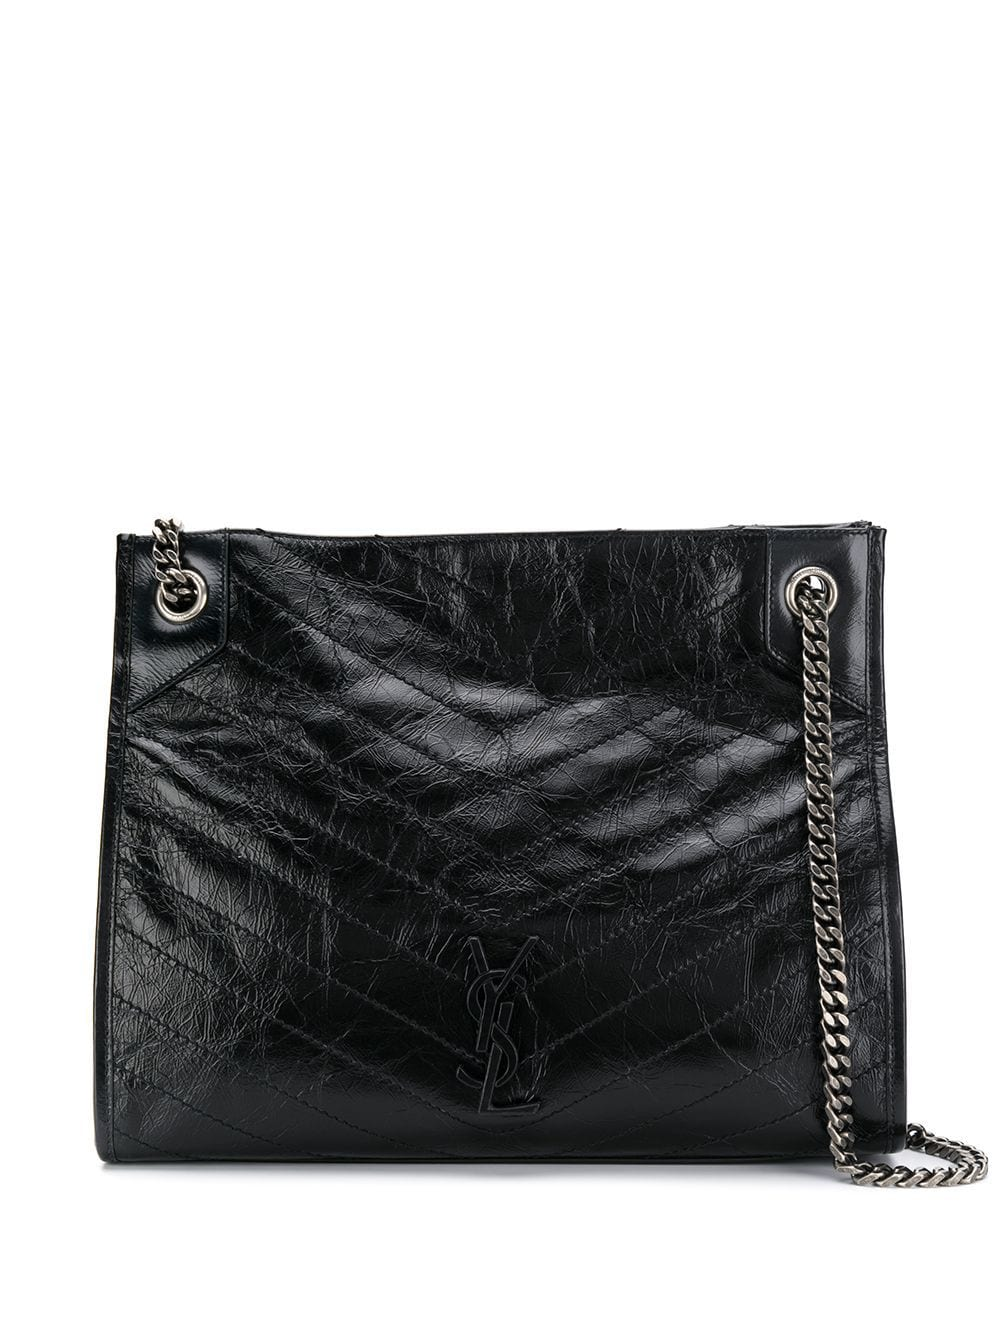 Saint Laurent Niki tote - Black von Saint Laurent